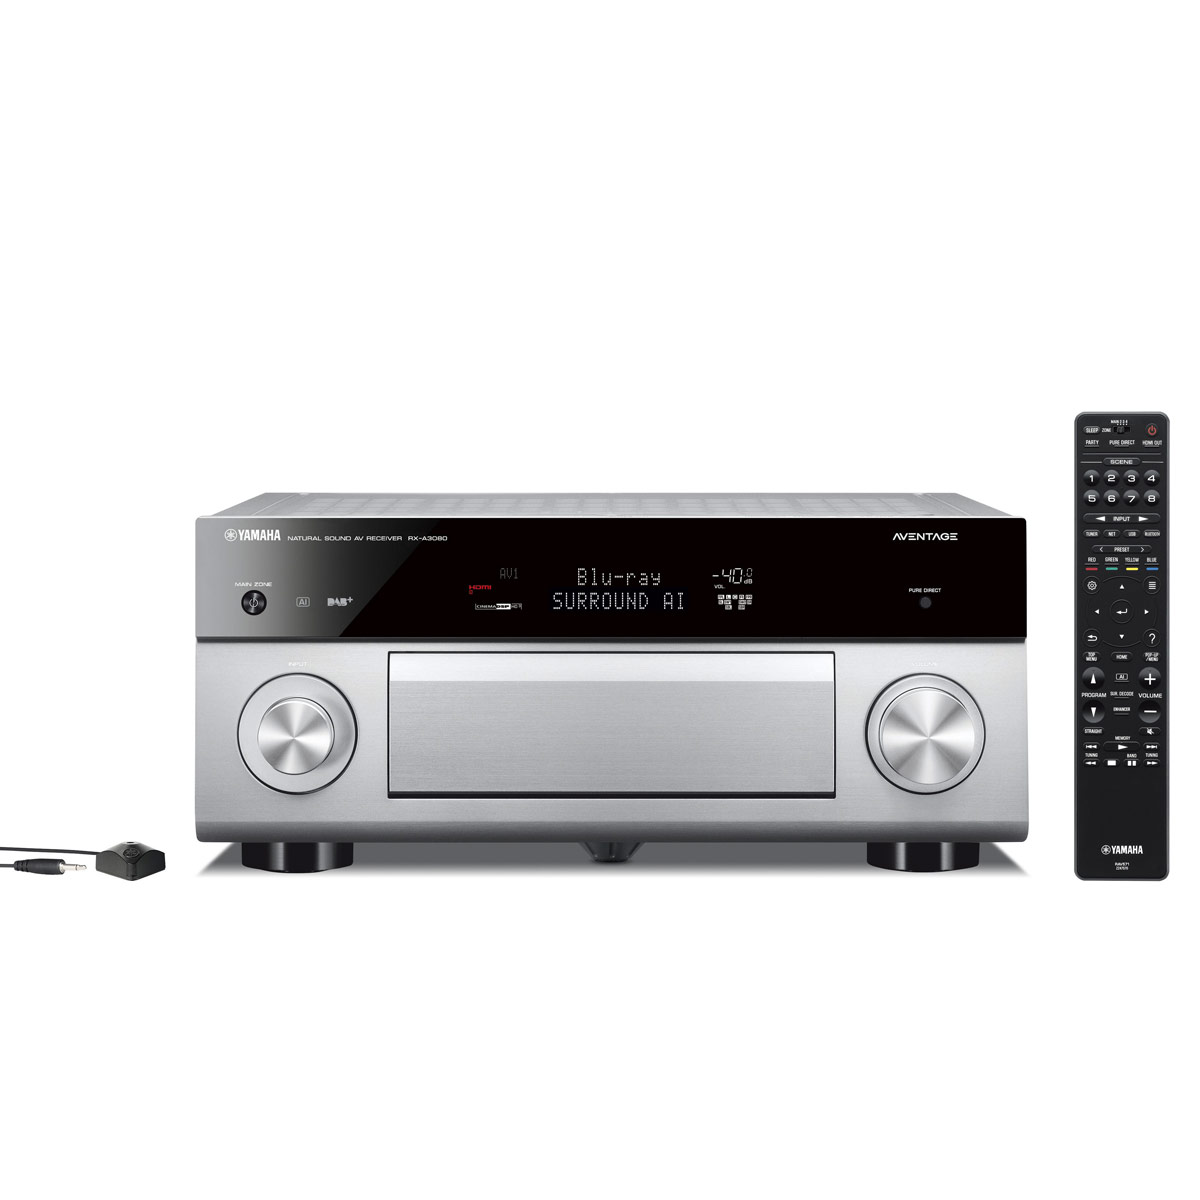 Ampli home cinéma Yamaha RX-A3080 Titane Ampli-tuner Home Cinéma 9.2 3D 150W/canal - Dolby Atmos/DTS:X - 7x HDMI HDCP 2.2 Ultra HD 4K - Wi-Fi/Bluetooth/DLNA/AirPlay - MusicCast/MusicCast Surround - A.R.T. Wedge - Calibration YPAO RSC